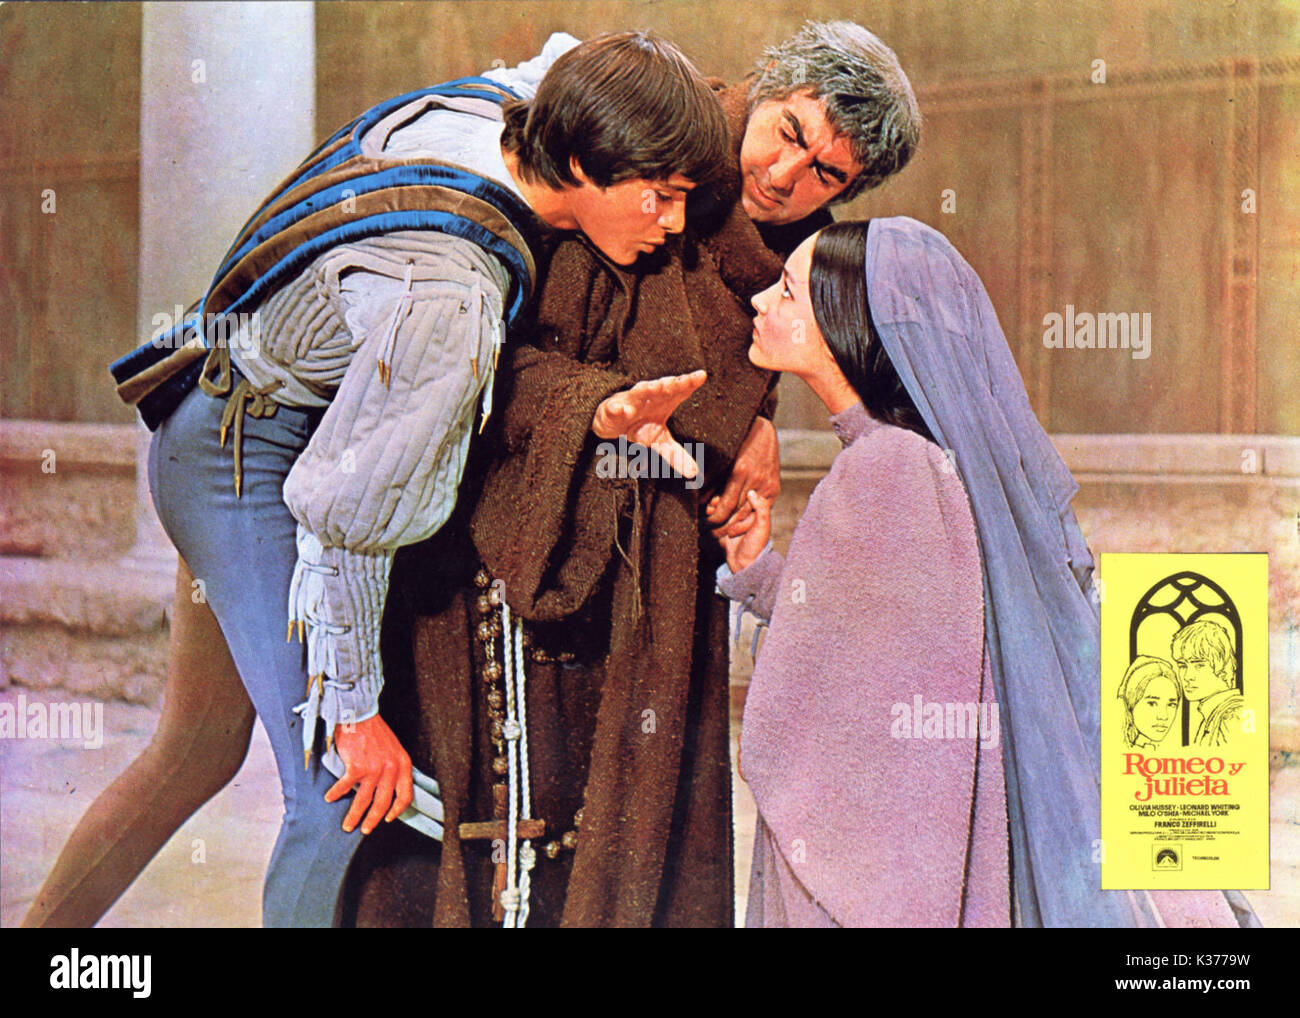 romeo and juliet religious imagery The importance of act 1 scene 5 of romeo and juliet shakespeare wrote the play romeo and juliet in 1594 the play is set in verona, in northern italy.